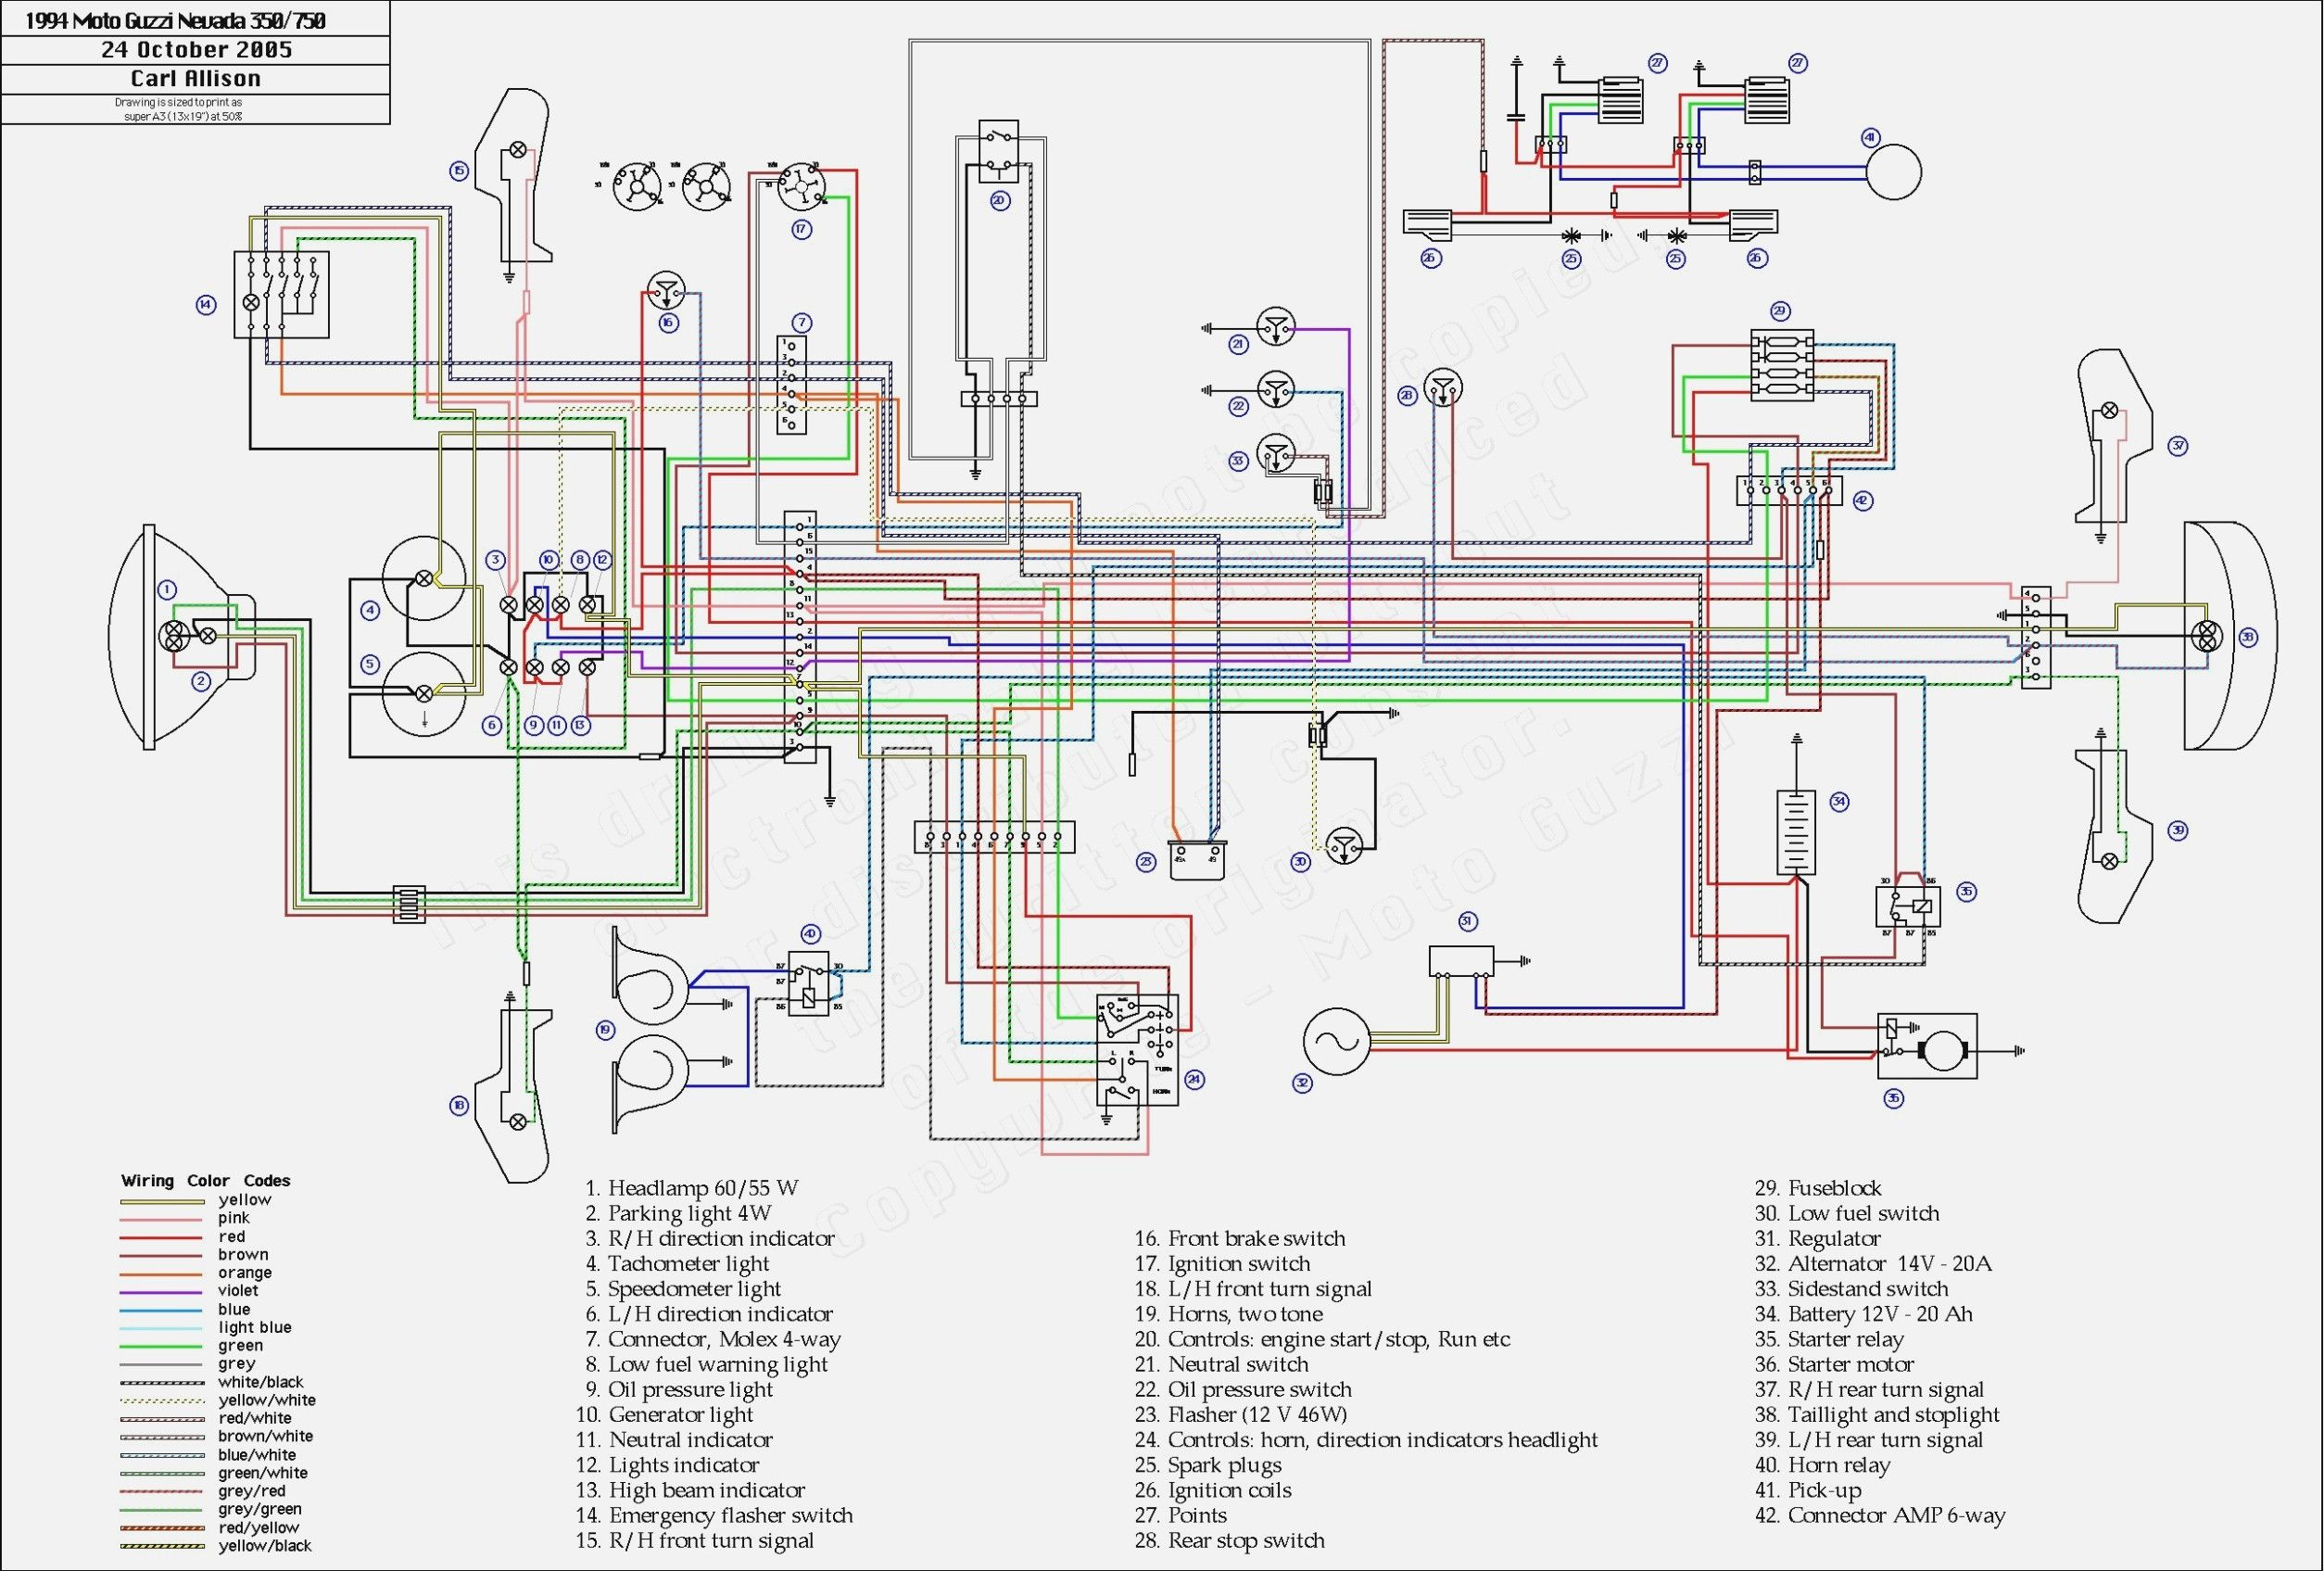 Best Of Wiring Diagram for New Light and Switch #diagrams ... John Deere L Wiring Diagram on